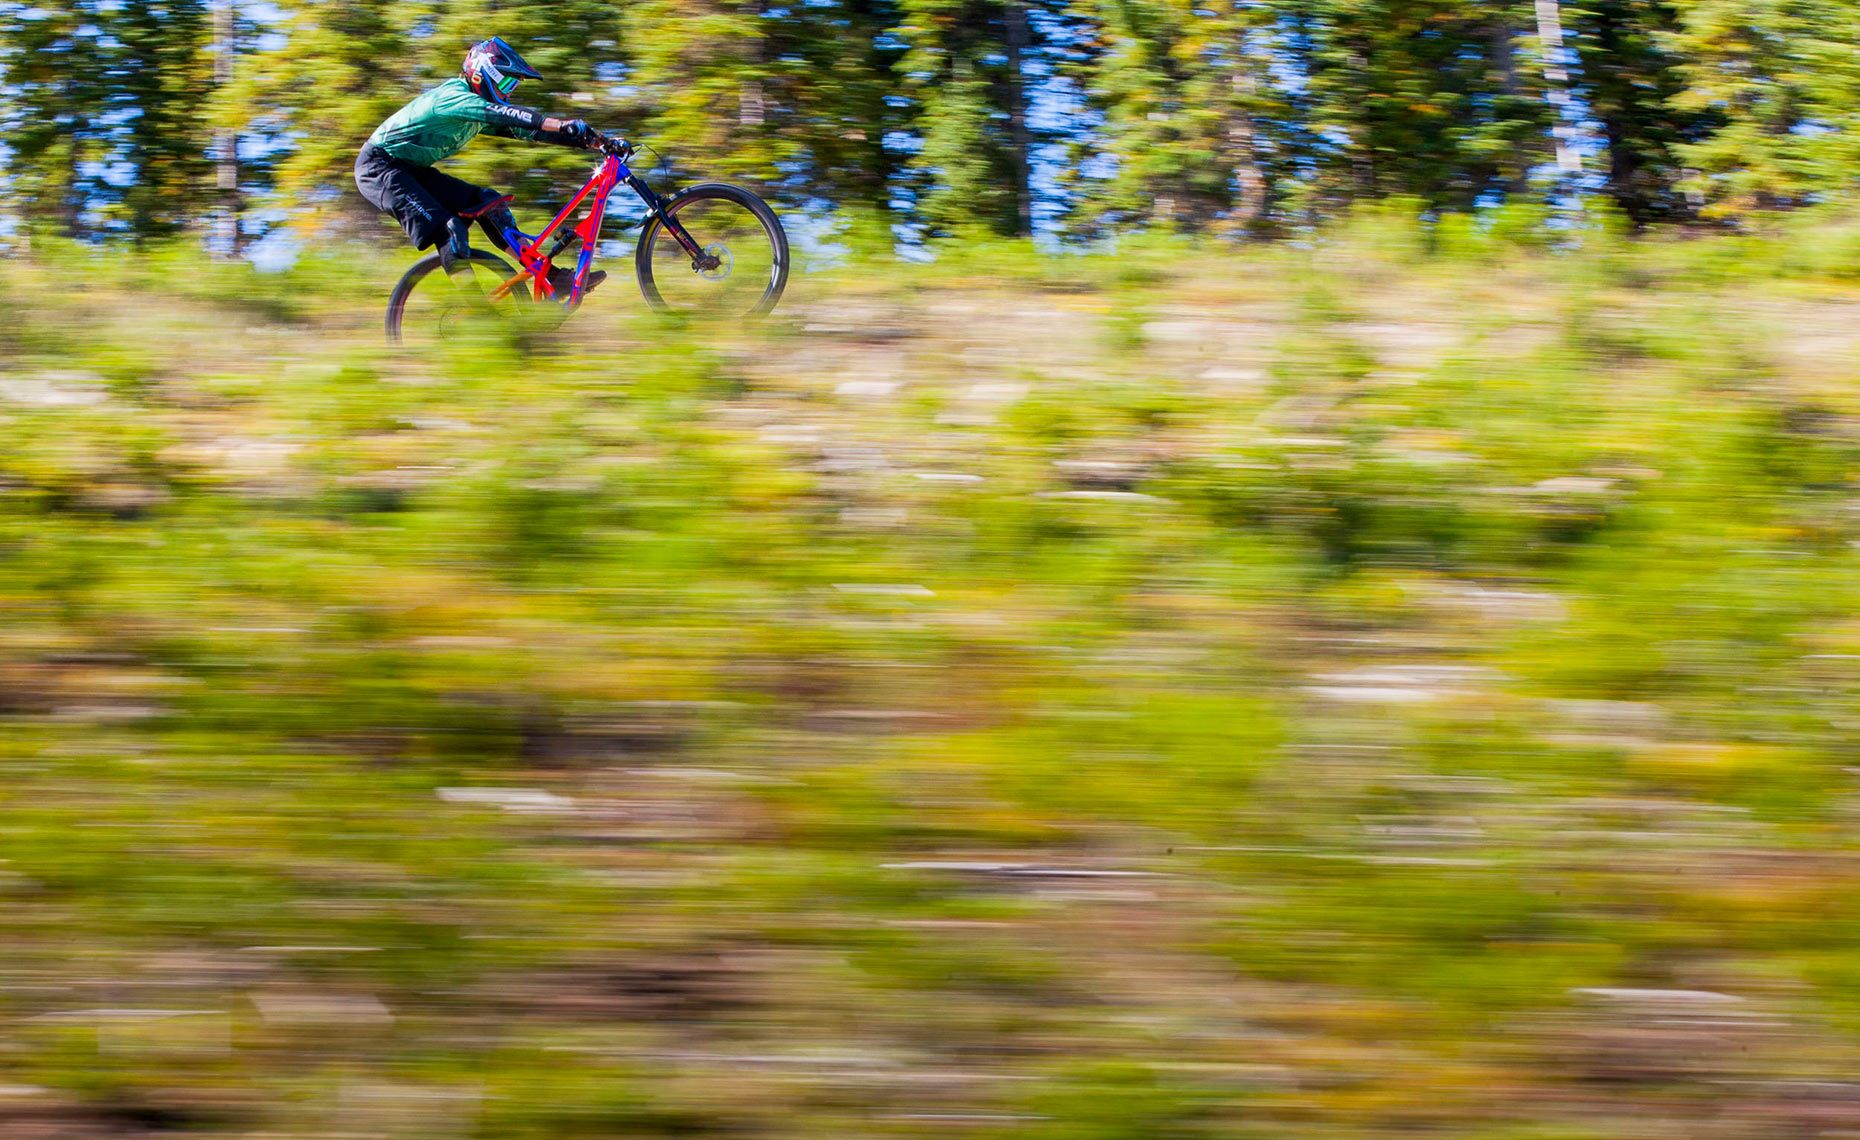 20170825-Trestle-Bike-Park-Chris-Wellhausen-1192